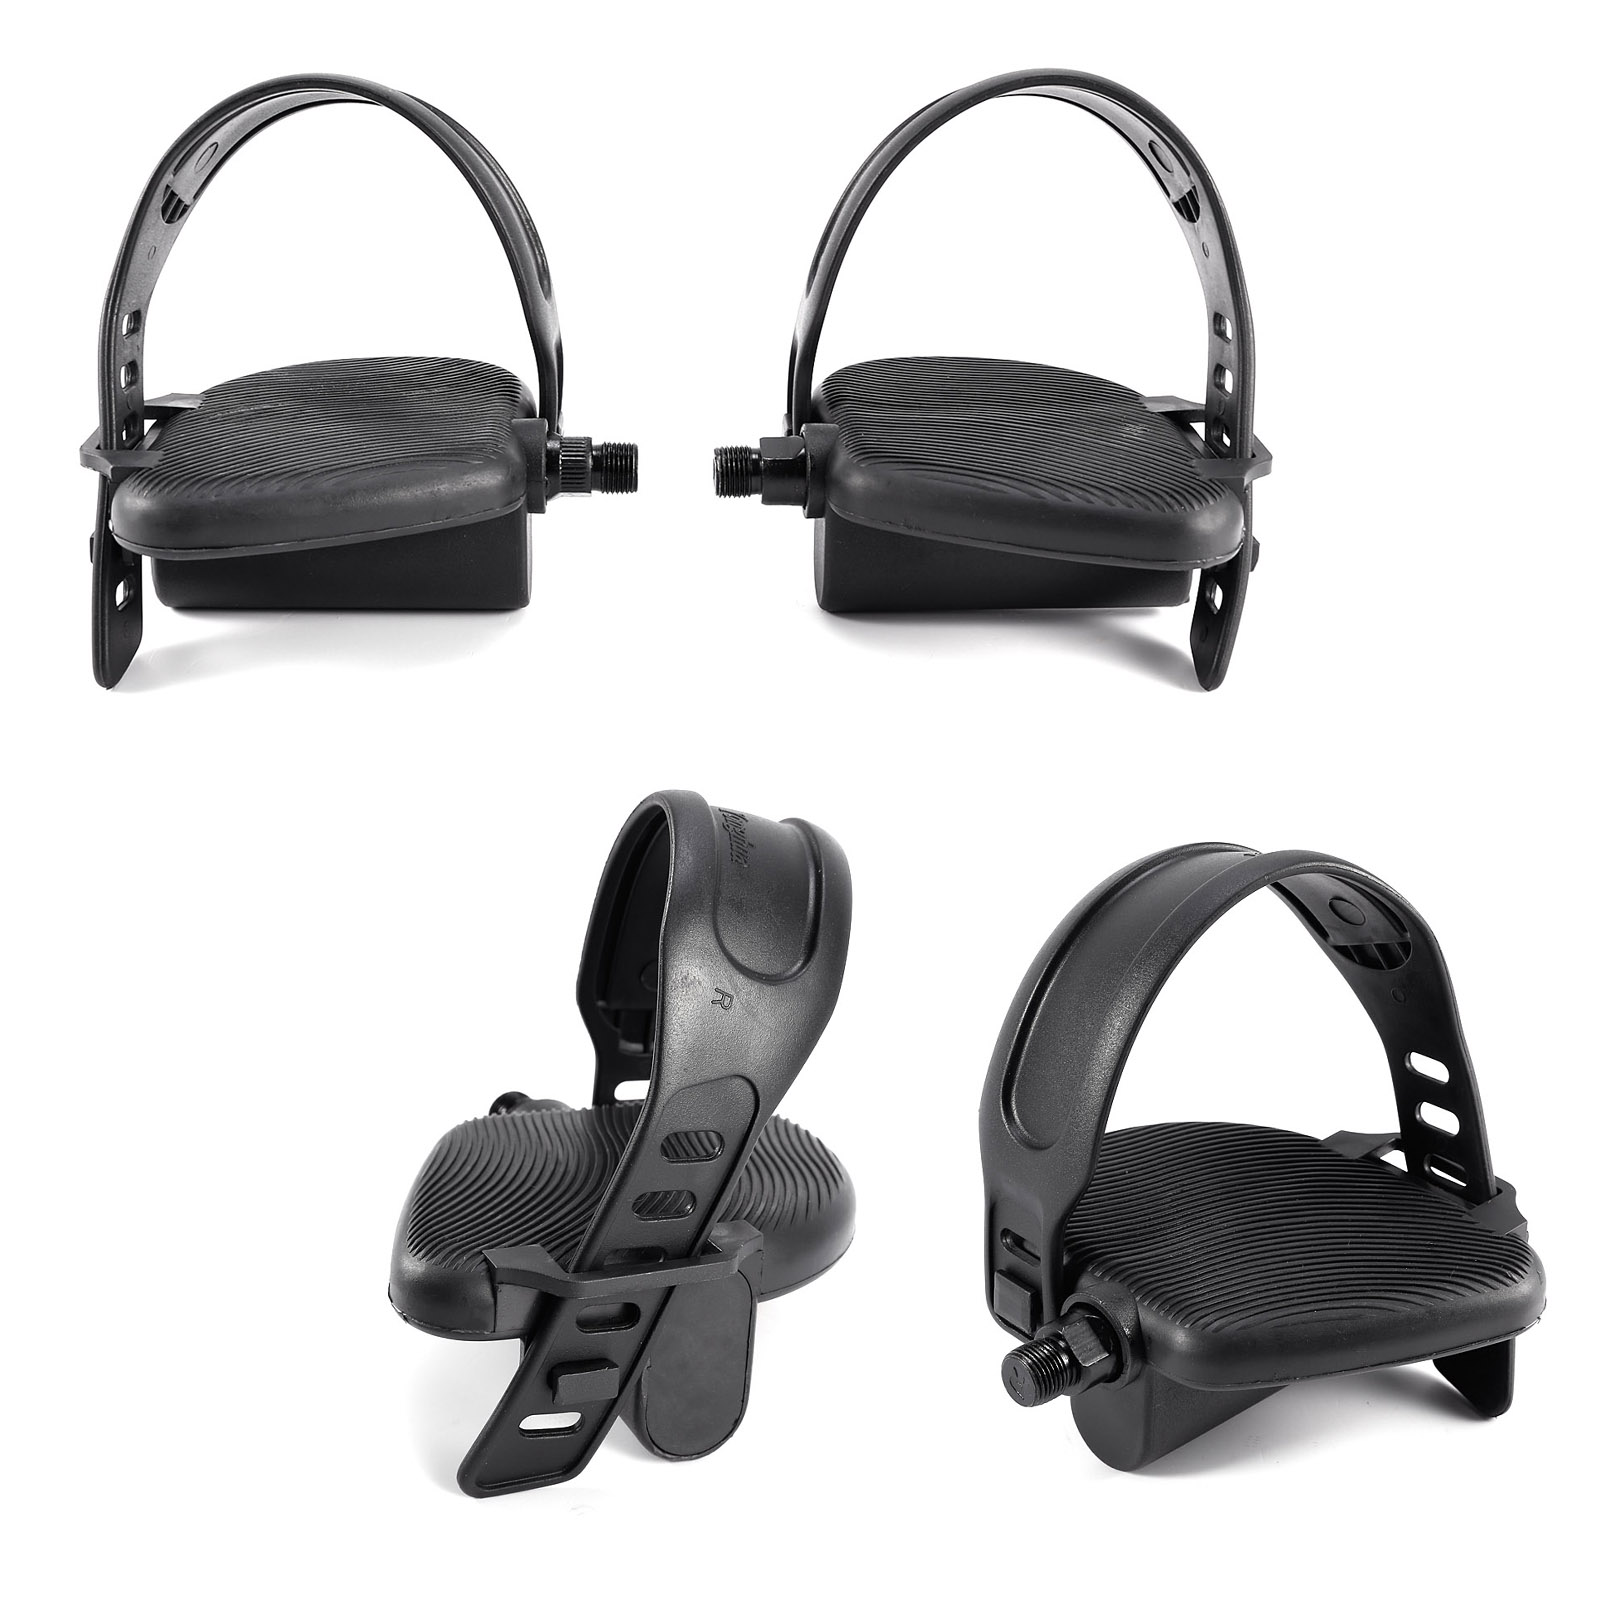 Exercise Bike Pedals W Adjustable Straps 1 2 9 16